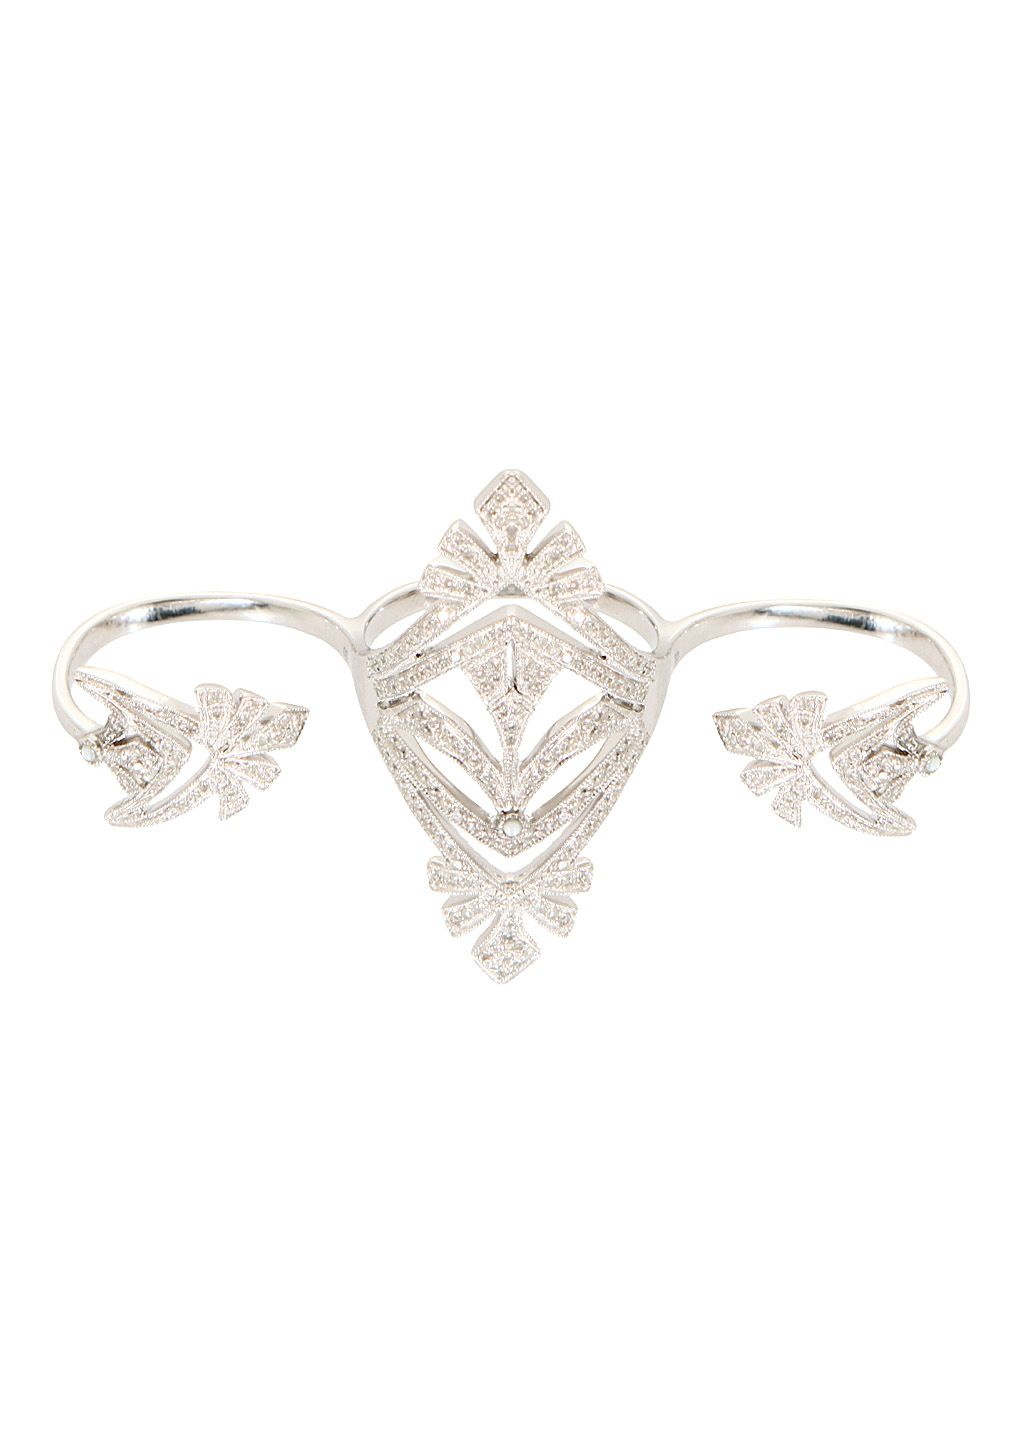 Joëlle Jewellery Rings :: Joëlle Jewellery white gold plated silver and white diamonds Antique 3 Fingers Ring | Montaigne Market